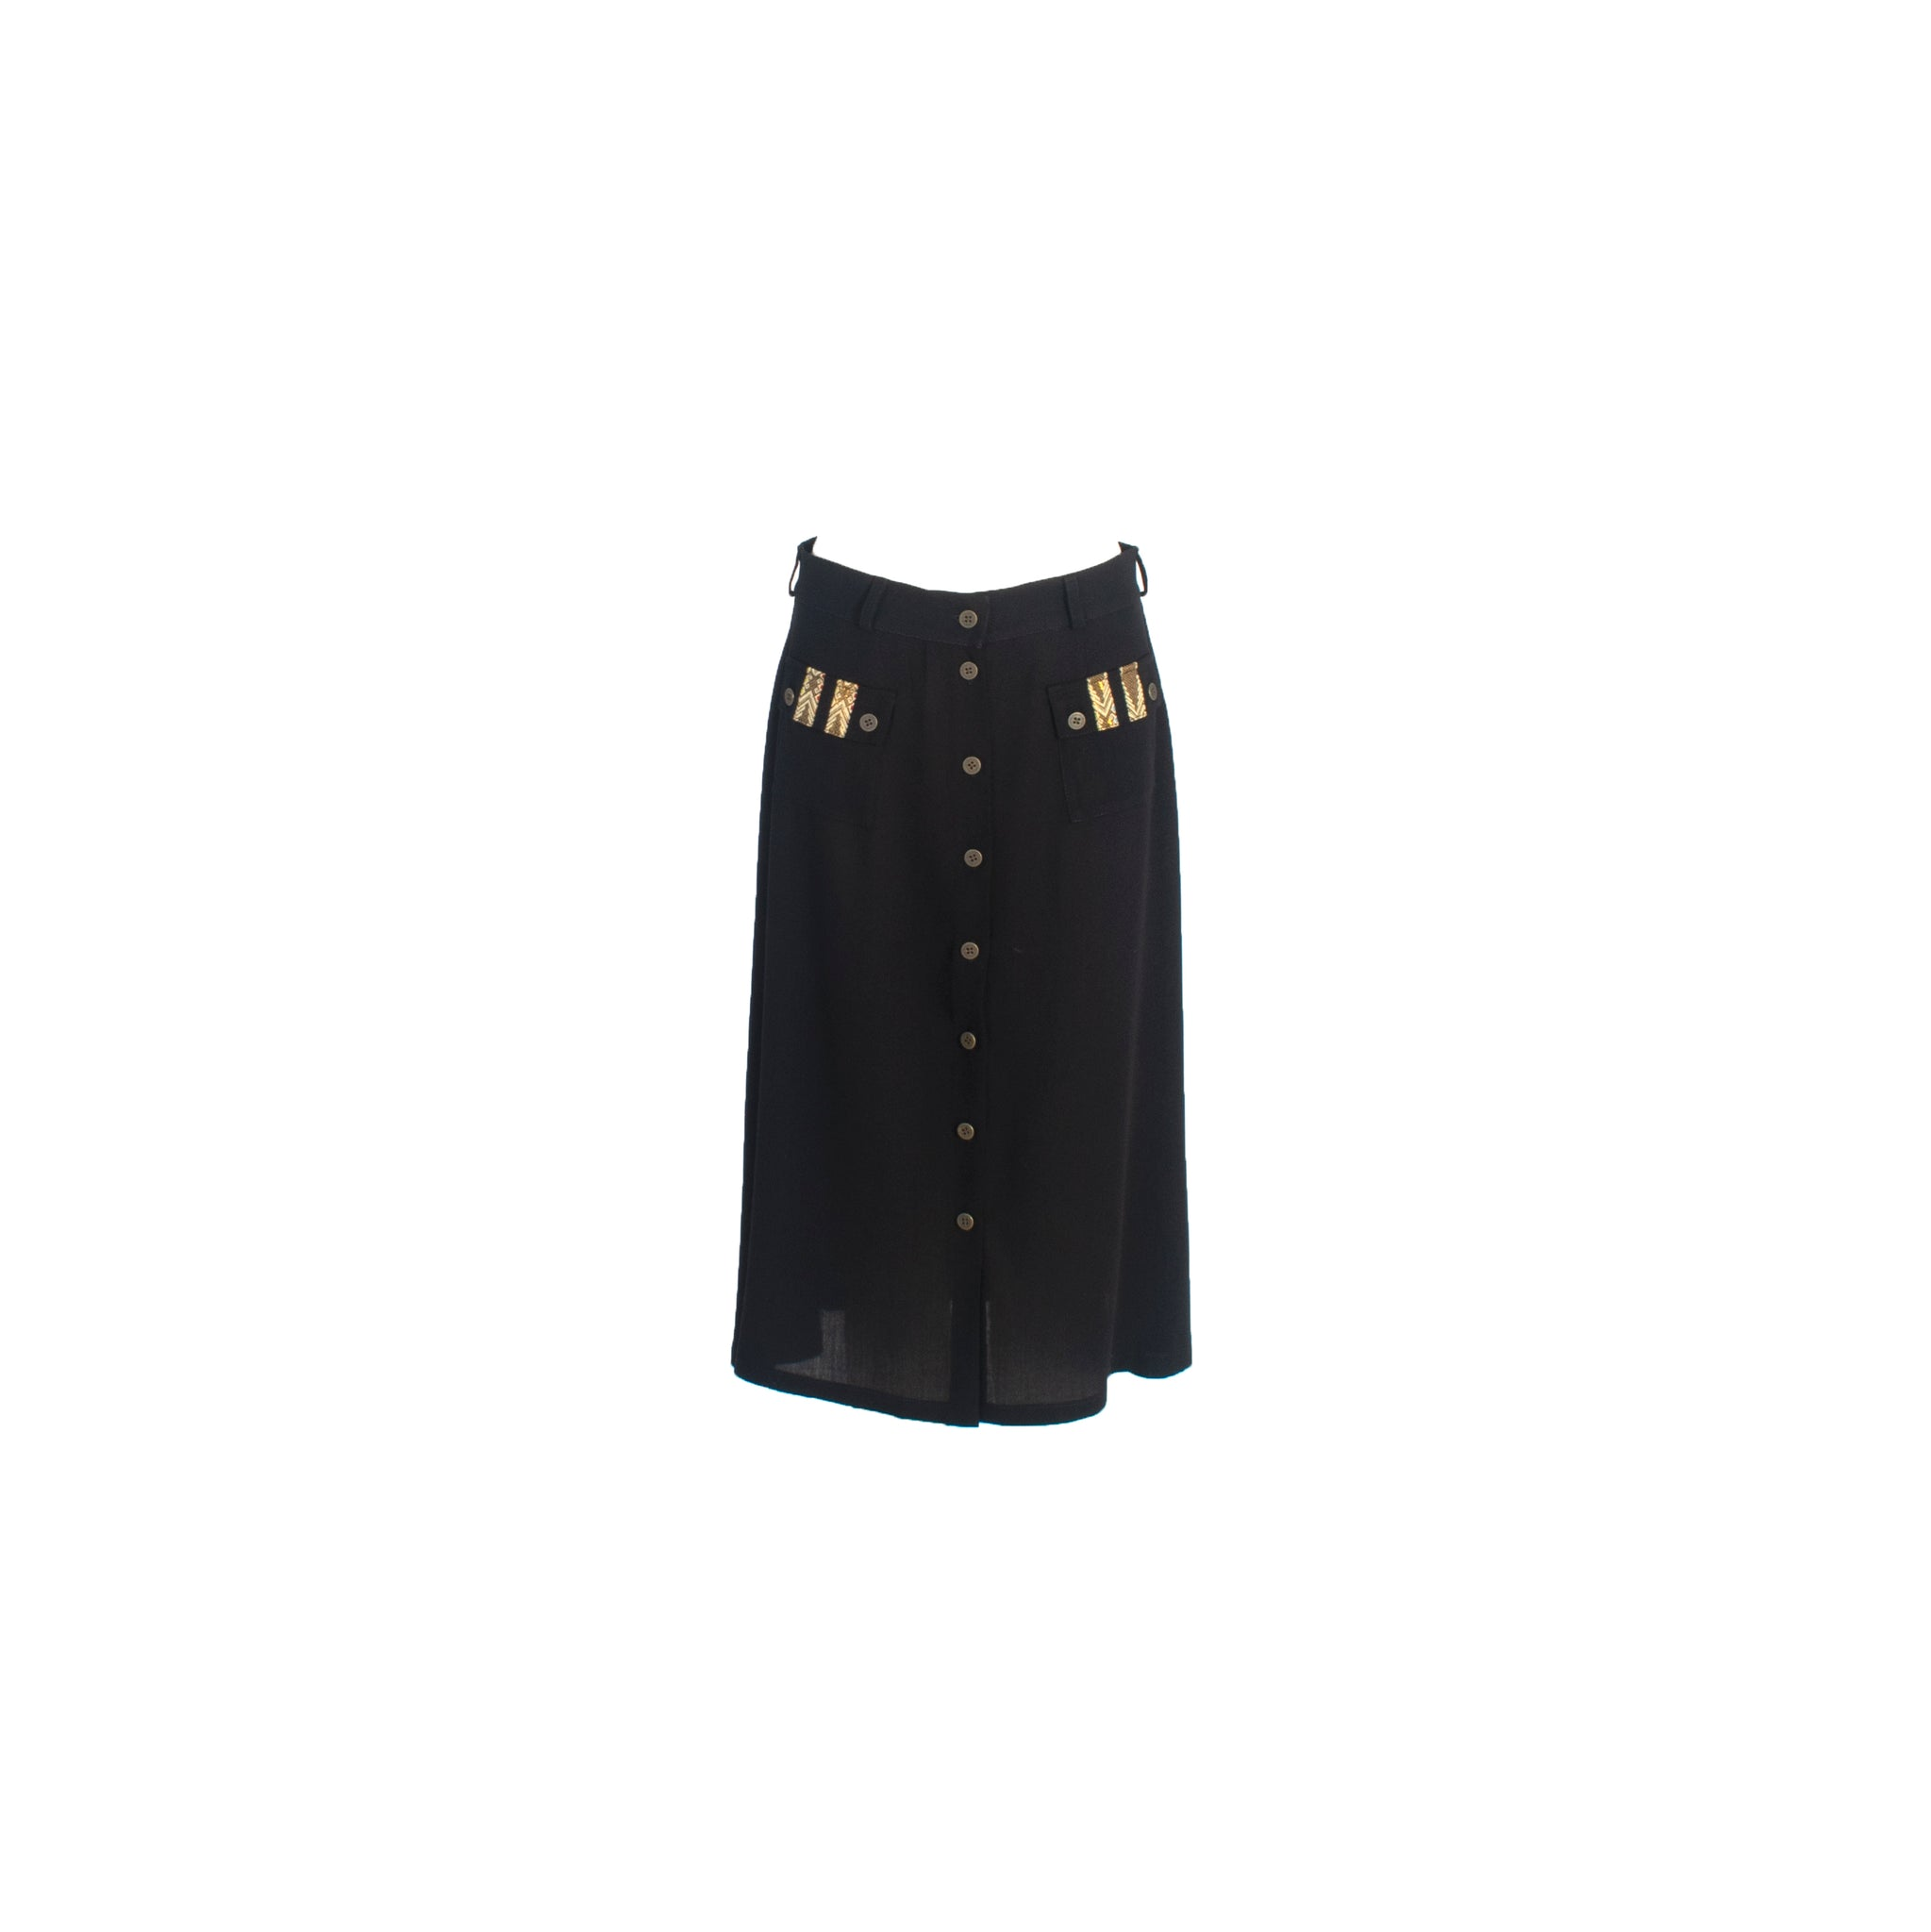 A-Line Wool Button Up Midi Skirt with Front Pockets Black